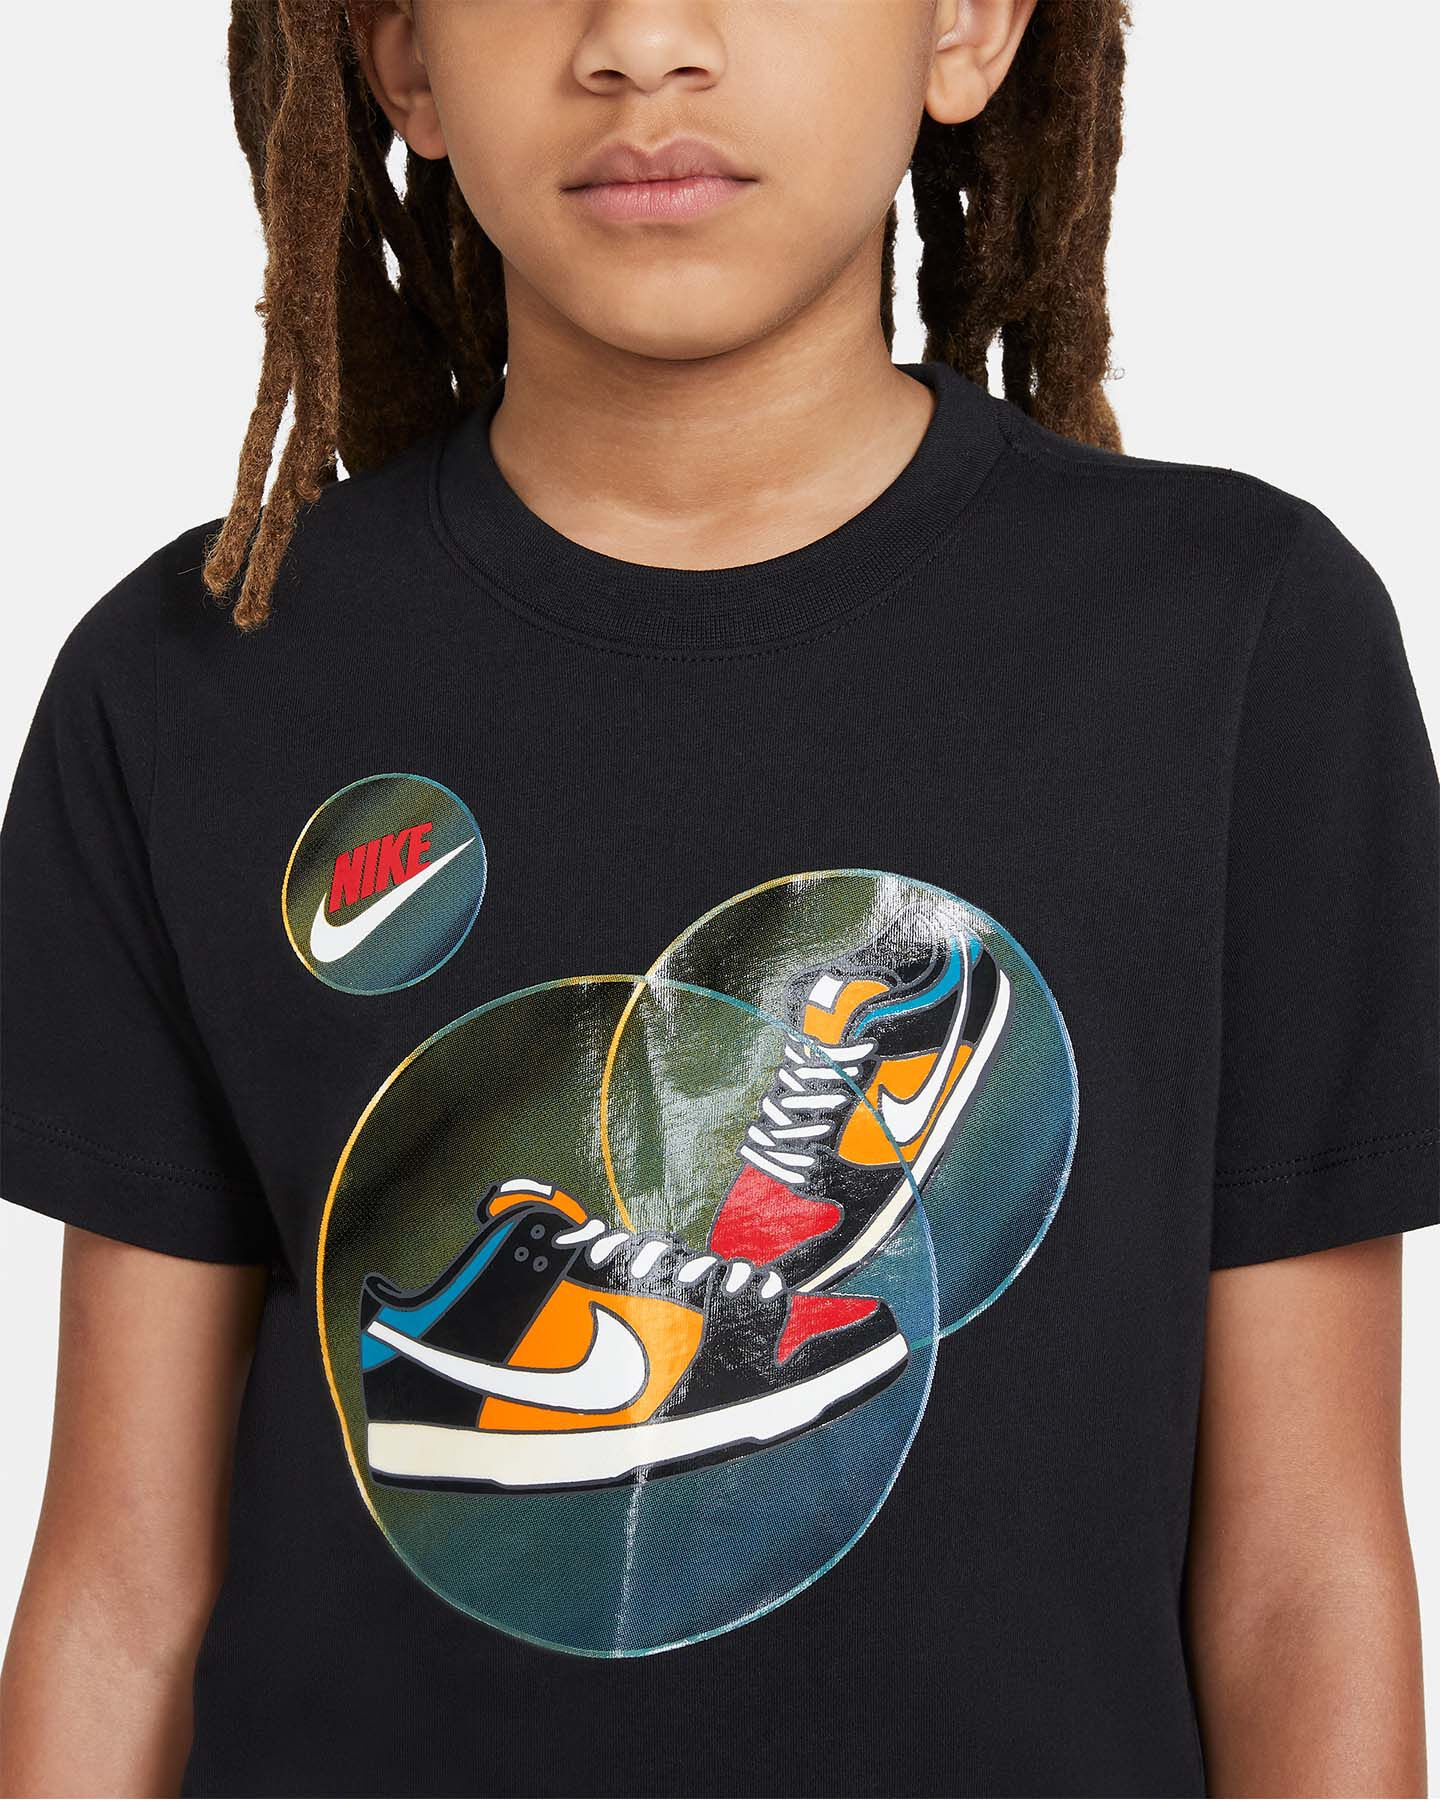 T-Shirt NIKE BUBBLE JR S5270250 scatto 2